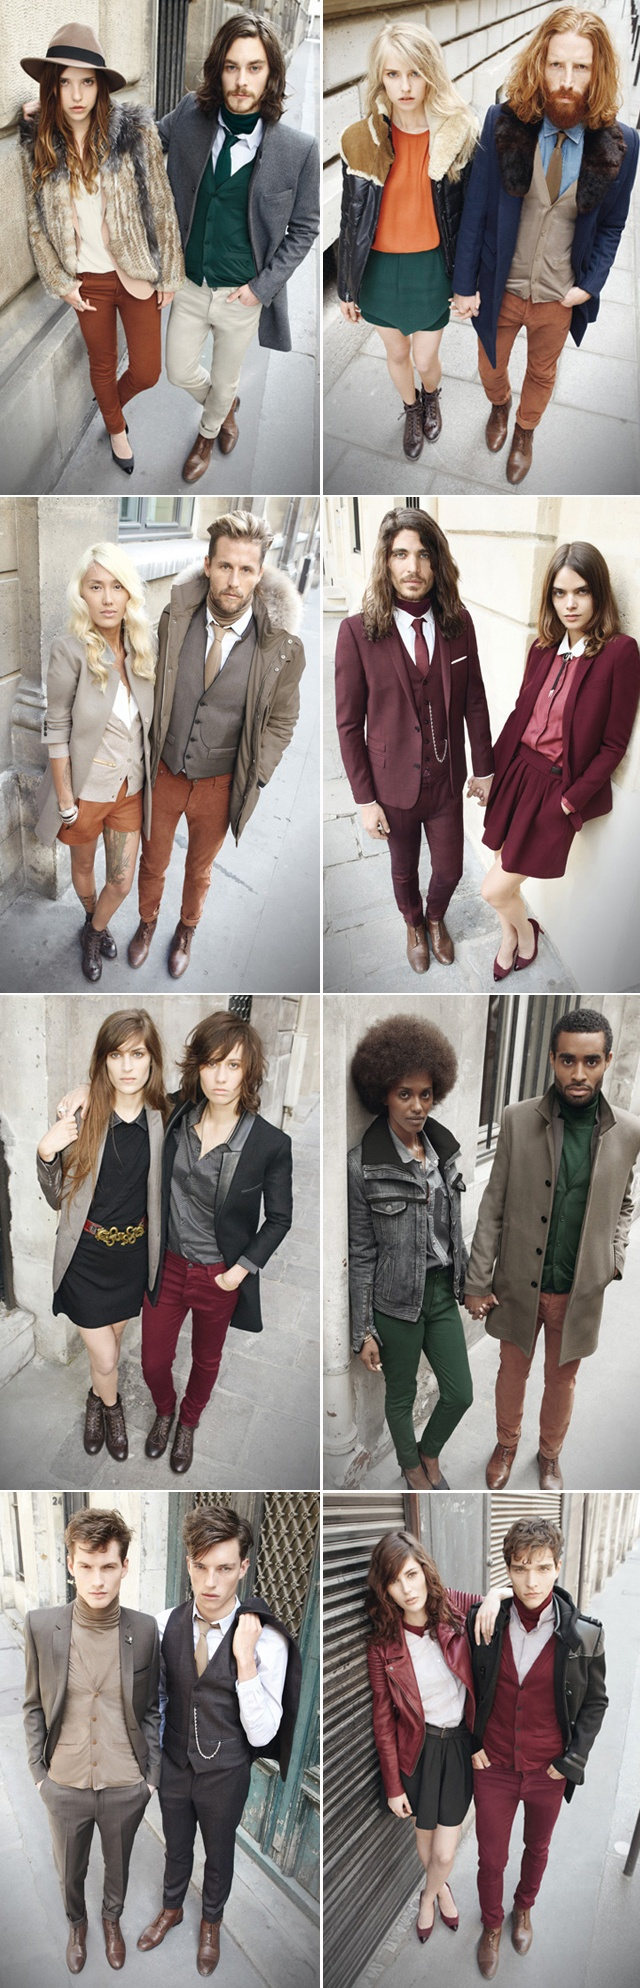 Stylish and Coordinated Couples - Kooples